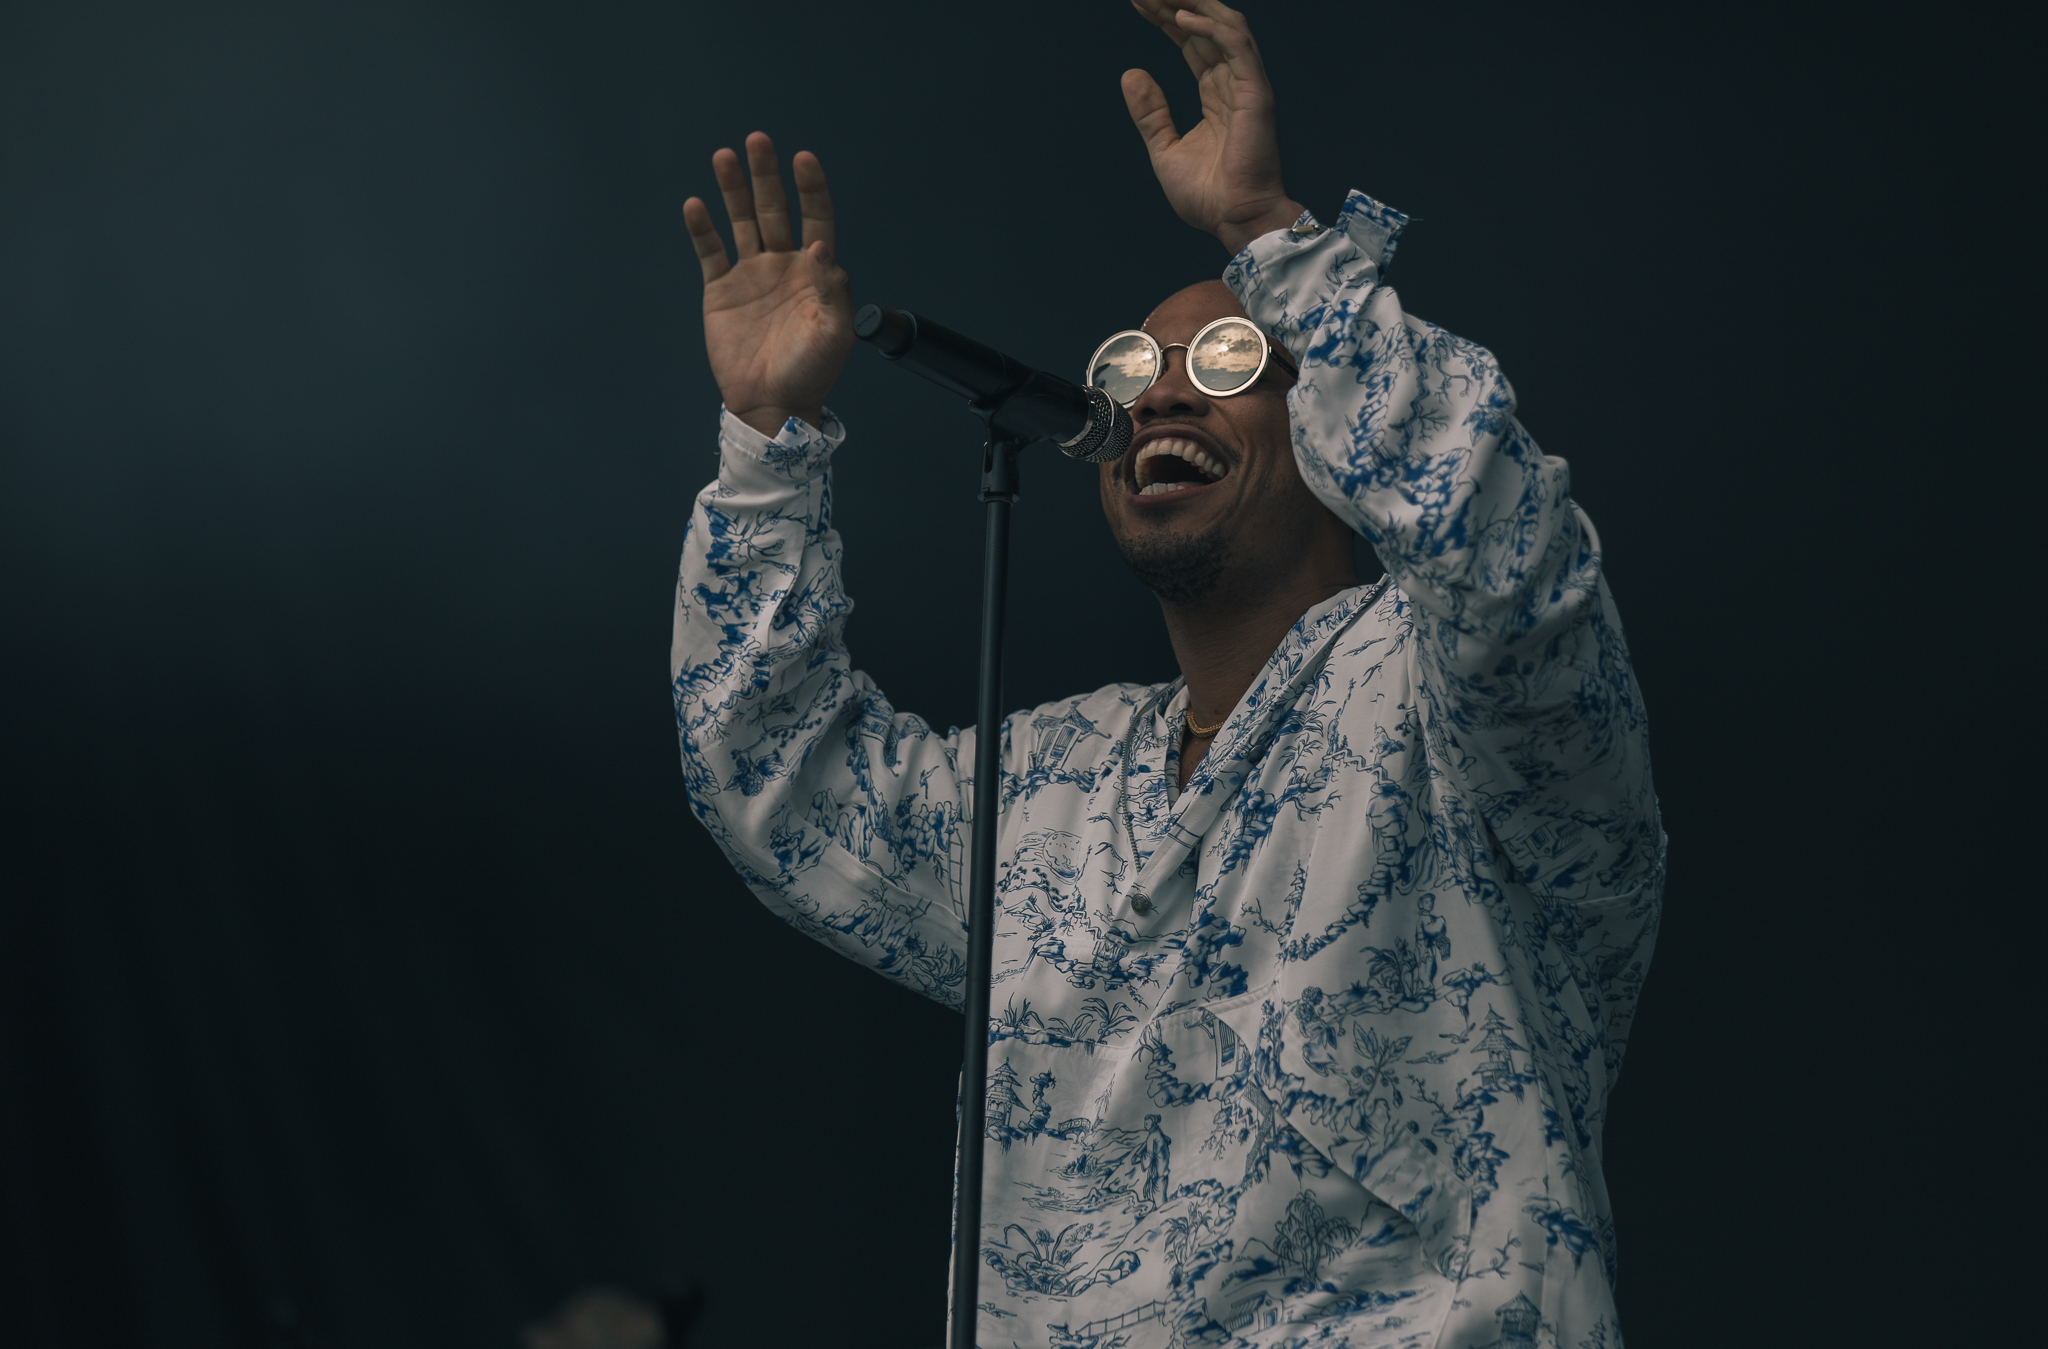 Laura Ord Photography   Austin, TX Concert Photography   Anderson .Paak at Hangout Music Fest in Gulf Shores, AL